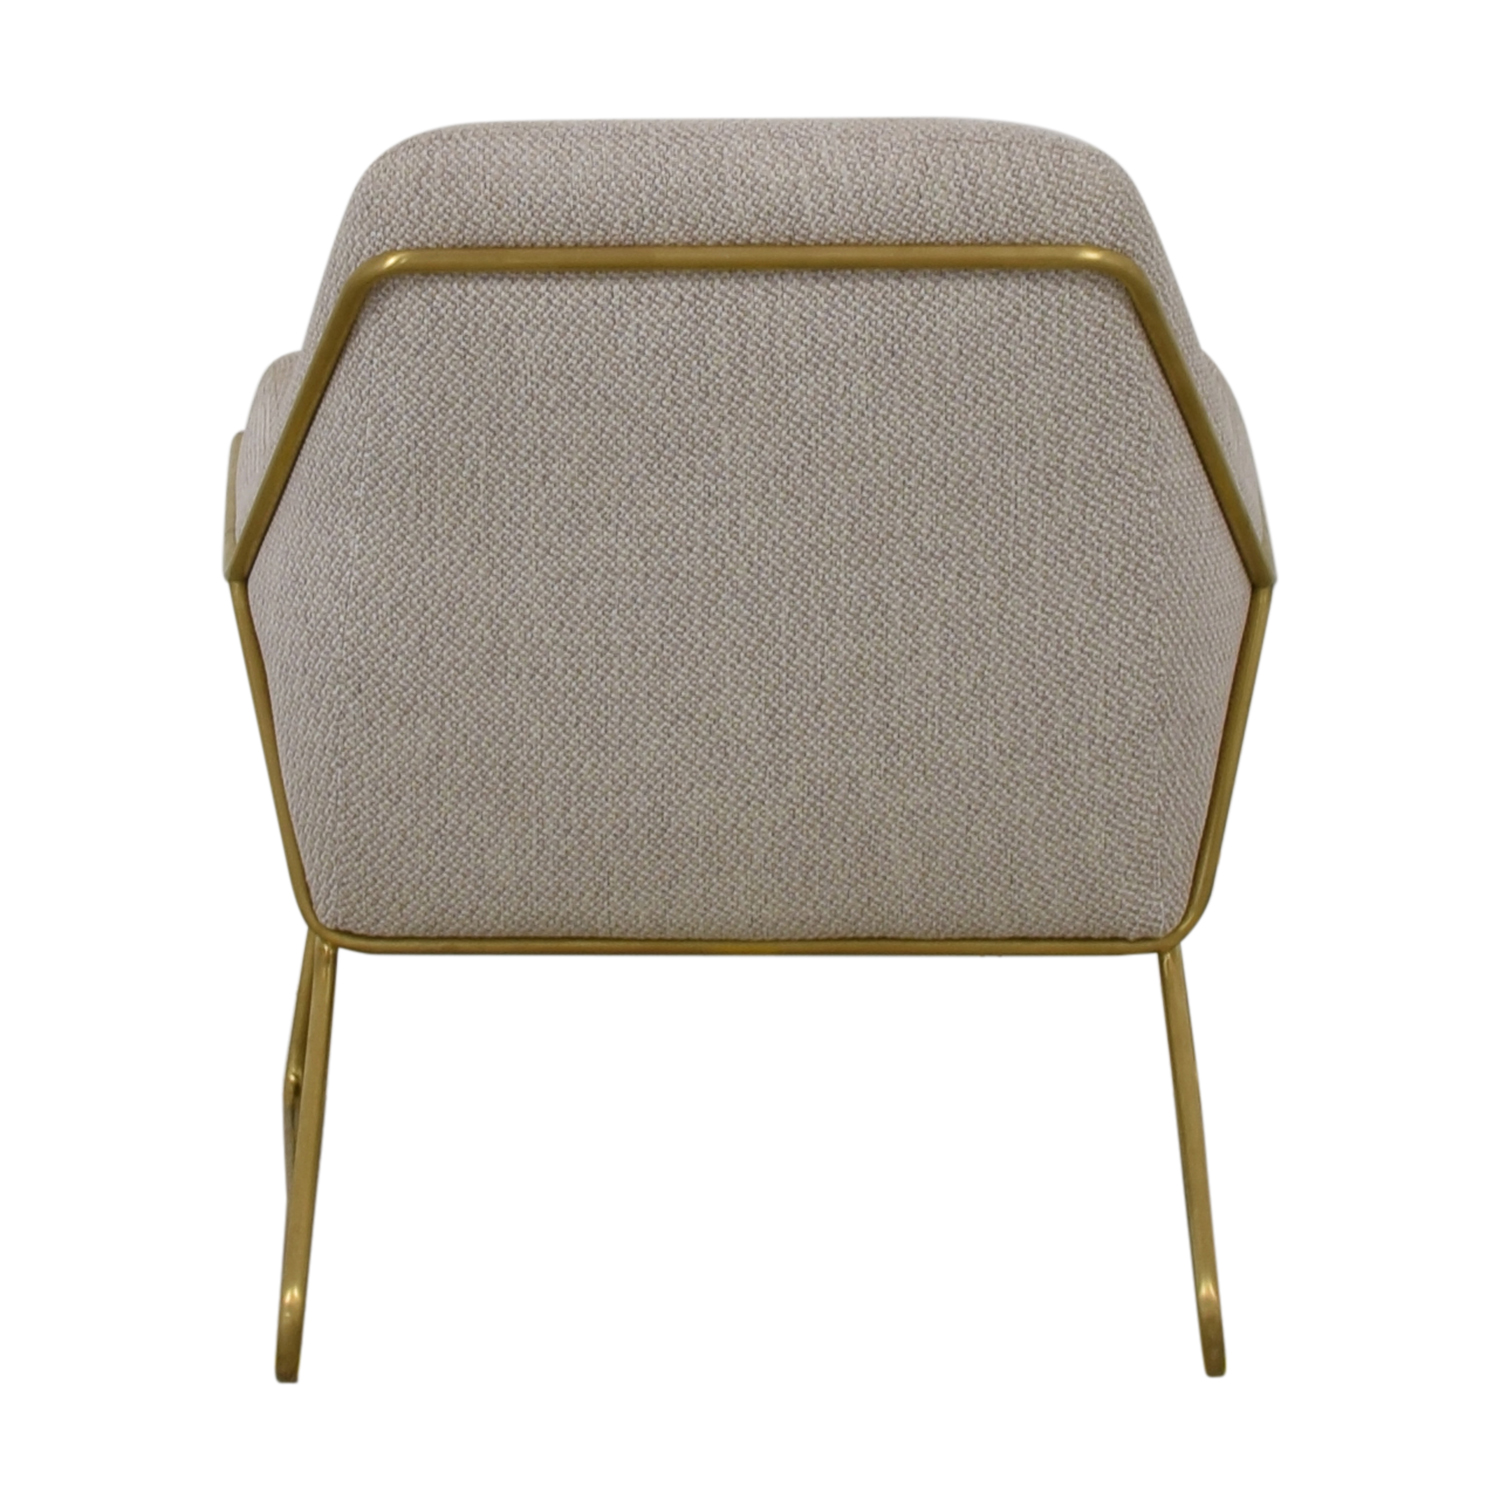 Article Article Forma Chair dimensions